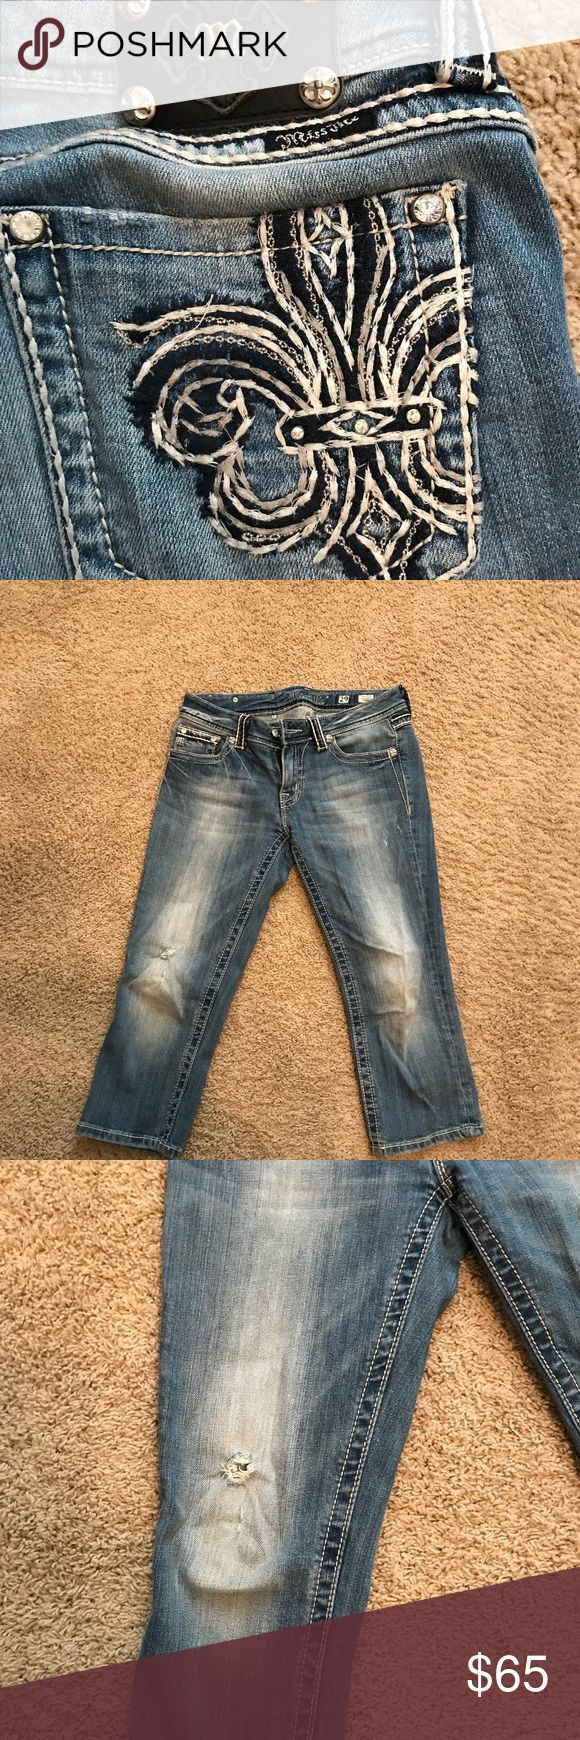 Miss Me Capris Miss Me Capris distressed slightly! Comes from a smoke free home. It is in great condition! Just waiting for you to make an offer! You need these! Miss Me Pants Capris